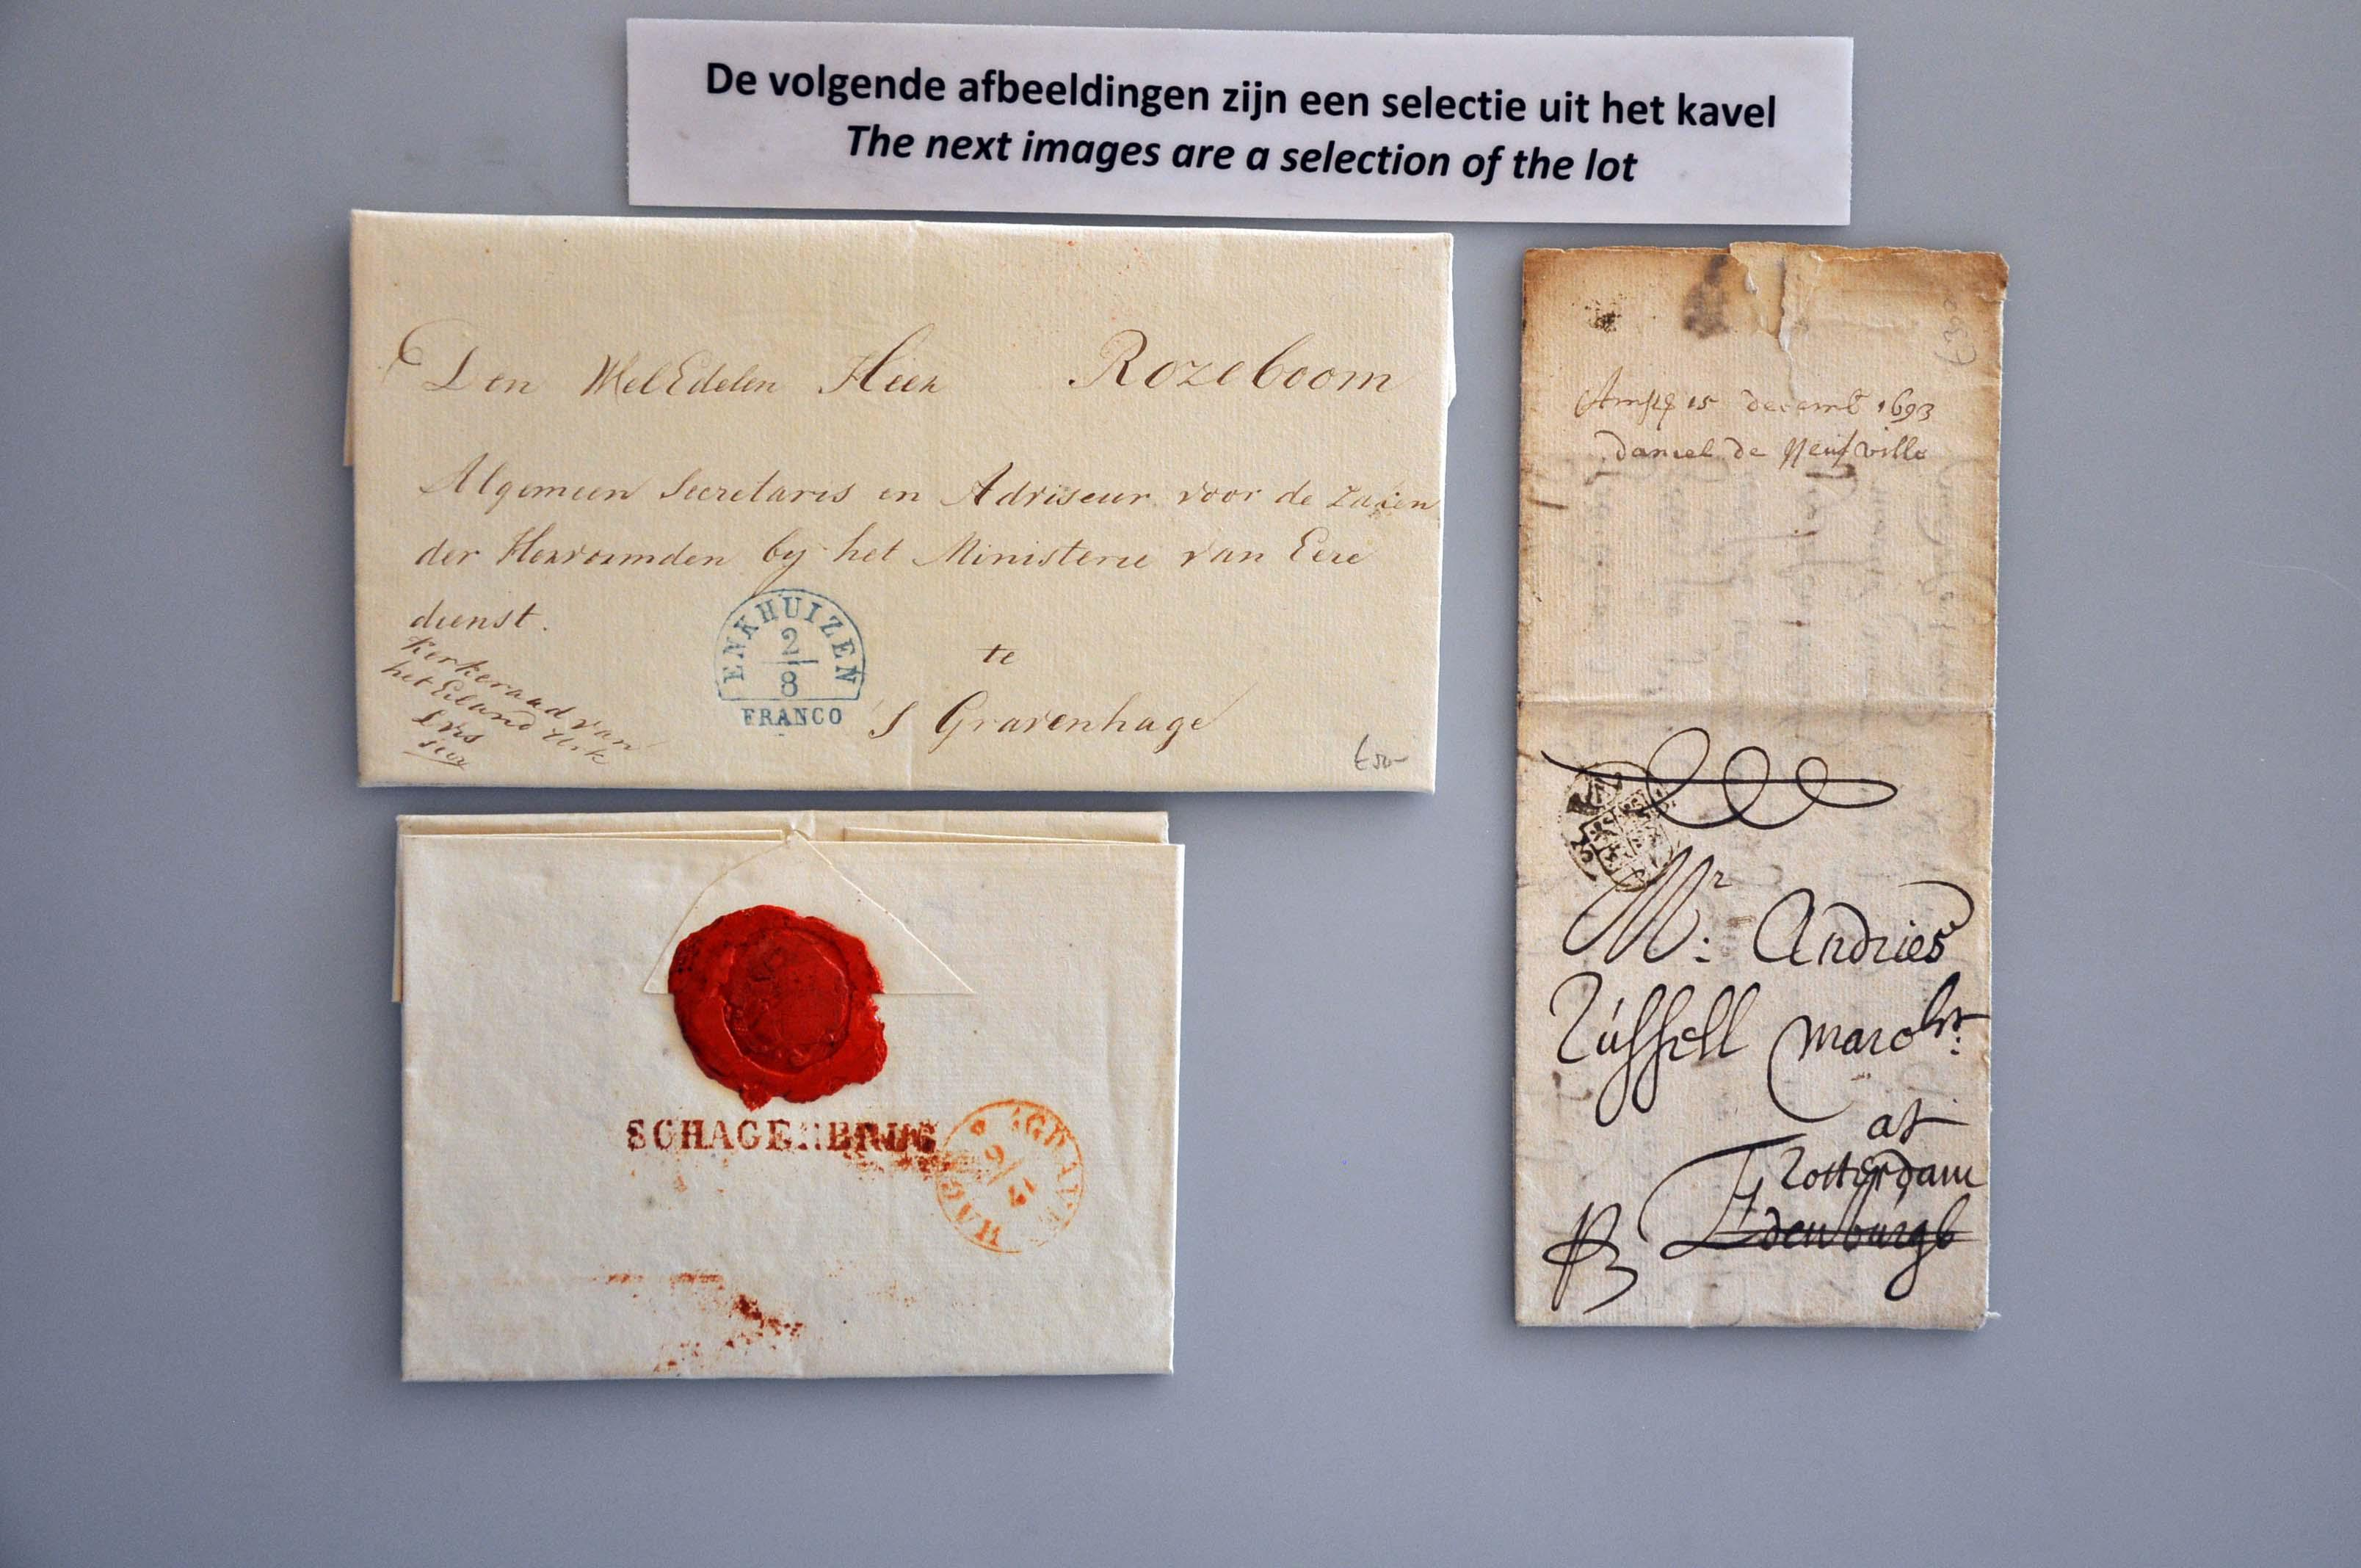 Lot 1631 - Netherlands and former colonies Netherlands -  Corinphila Veilingen Auction 250-253 - Day 2 - Coins, medals, Netherlands and former colonies